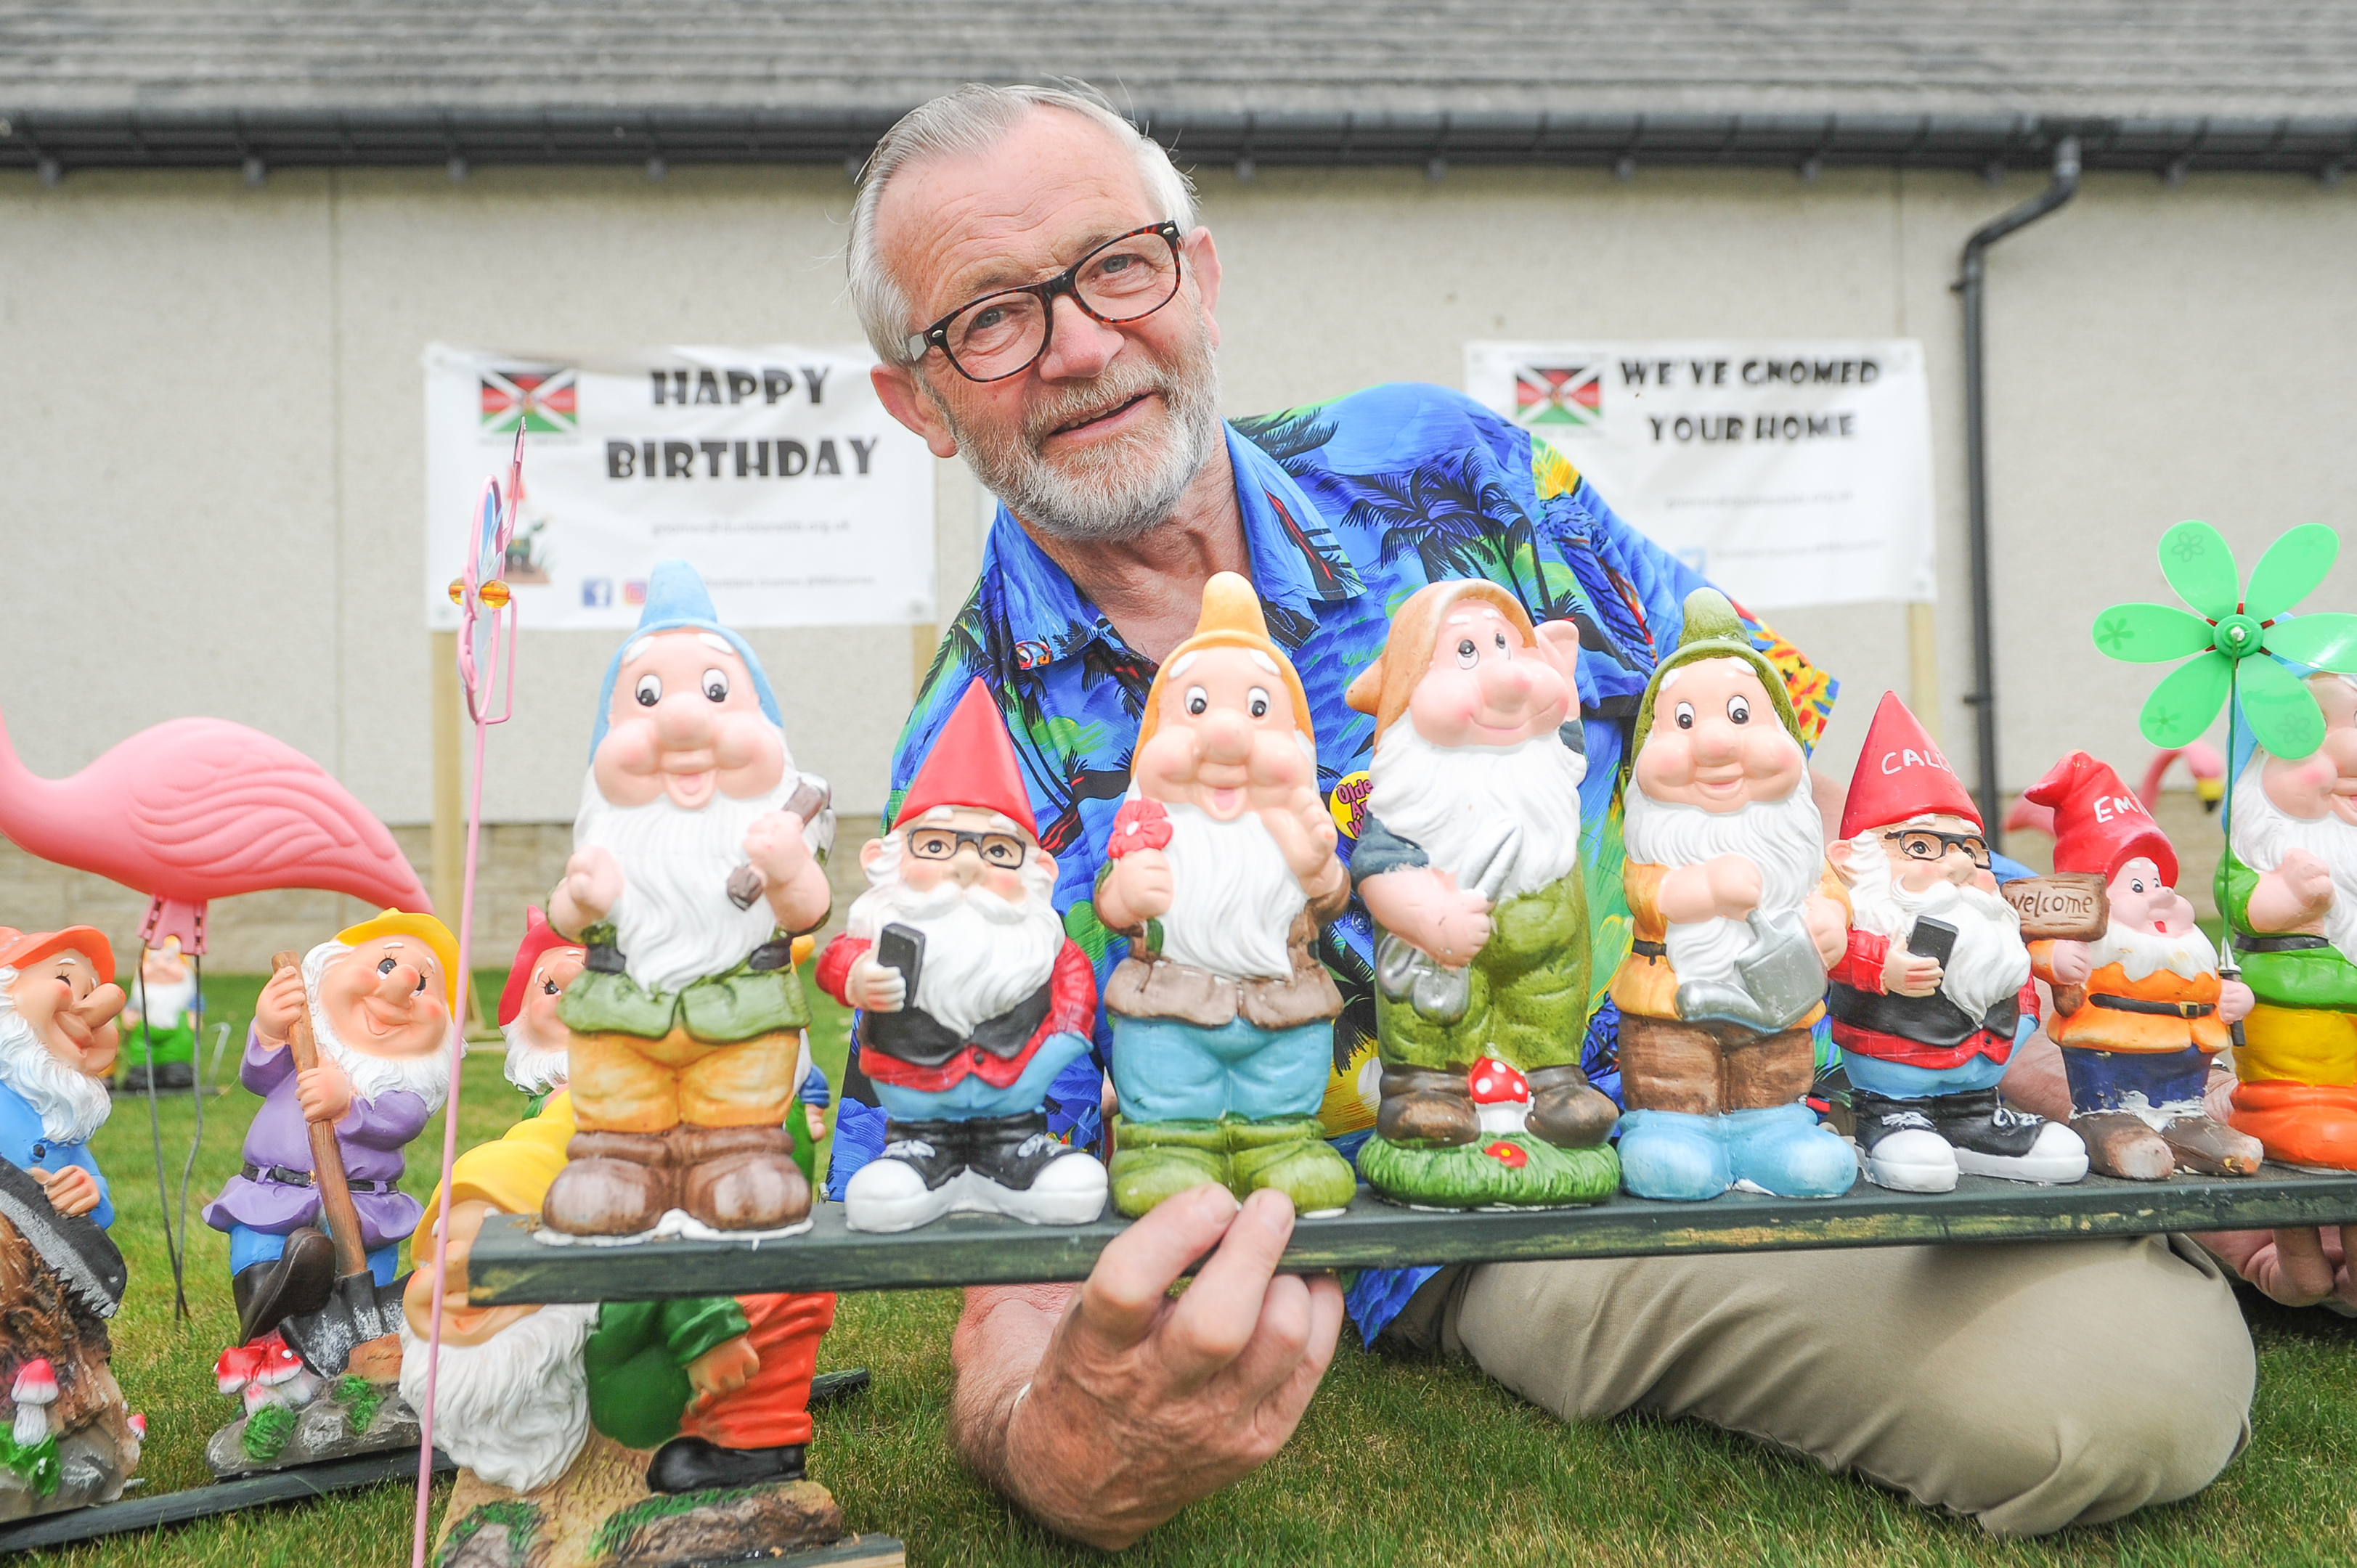 David McLaren and some of the gnomes